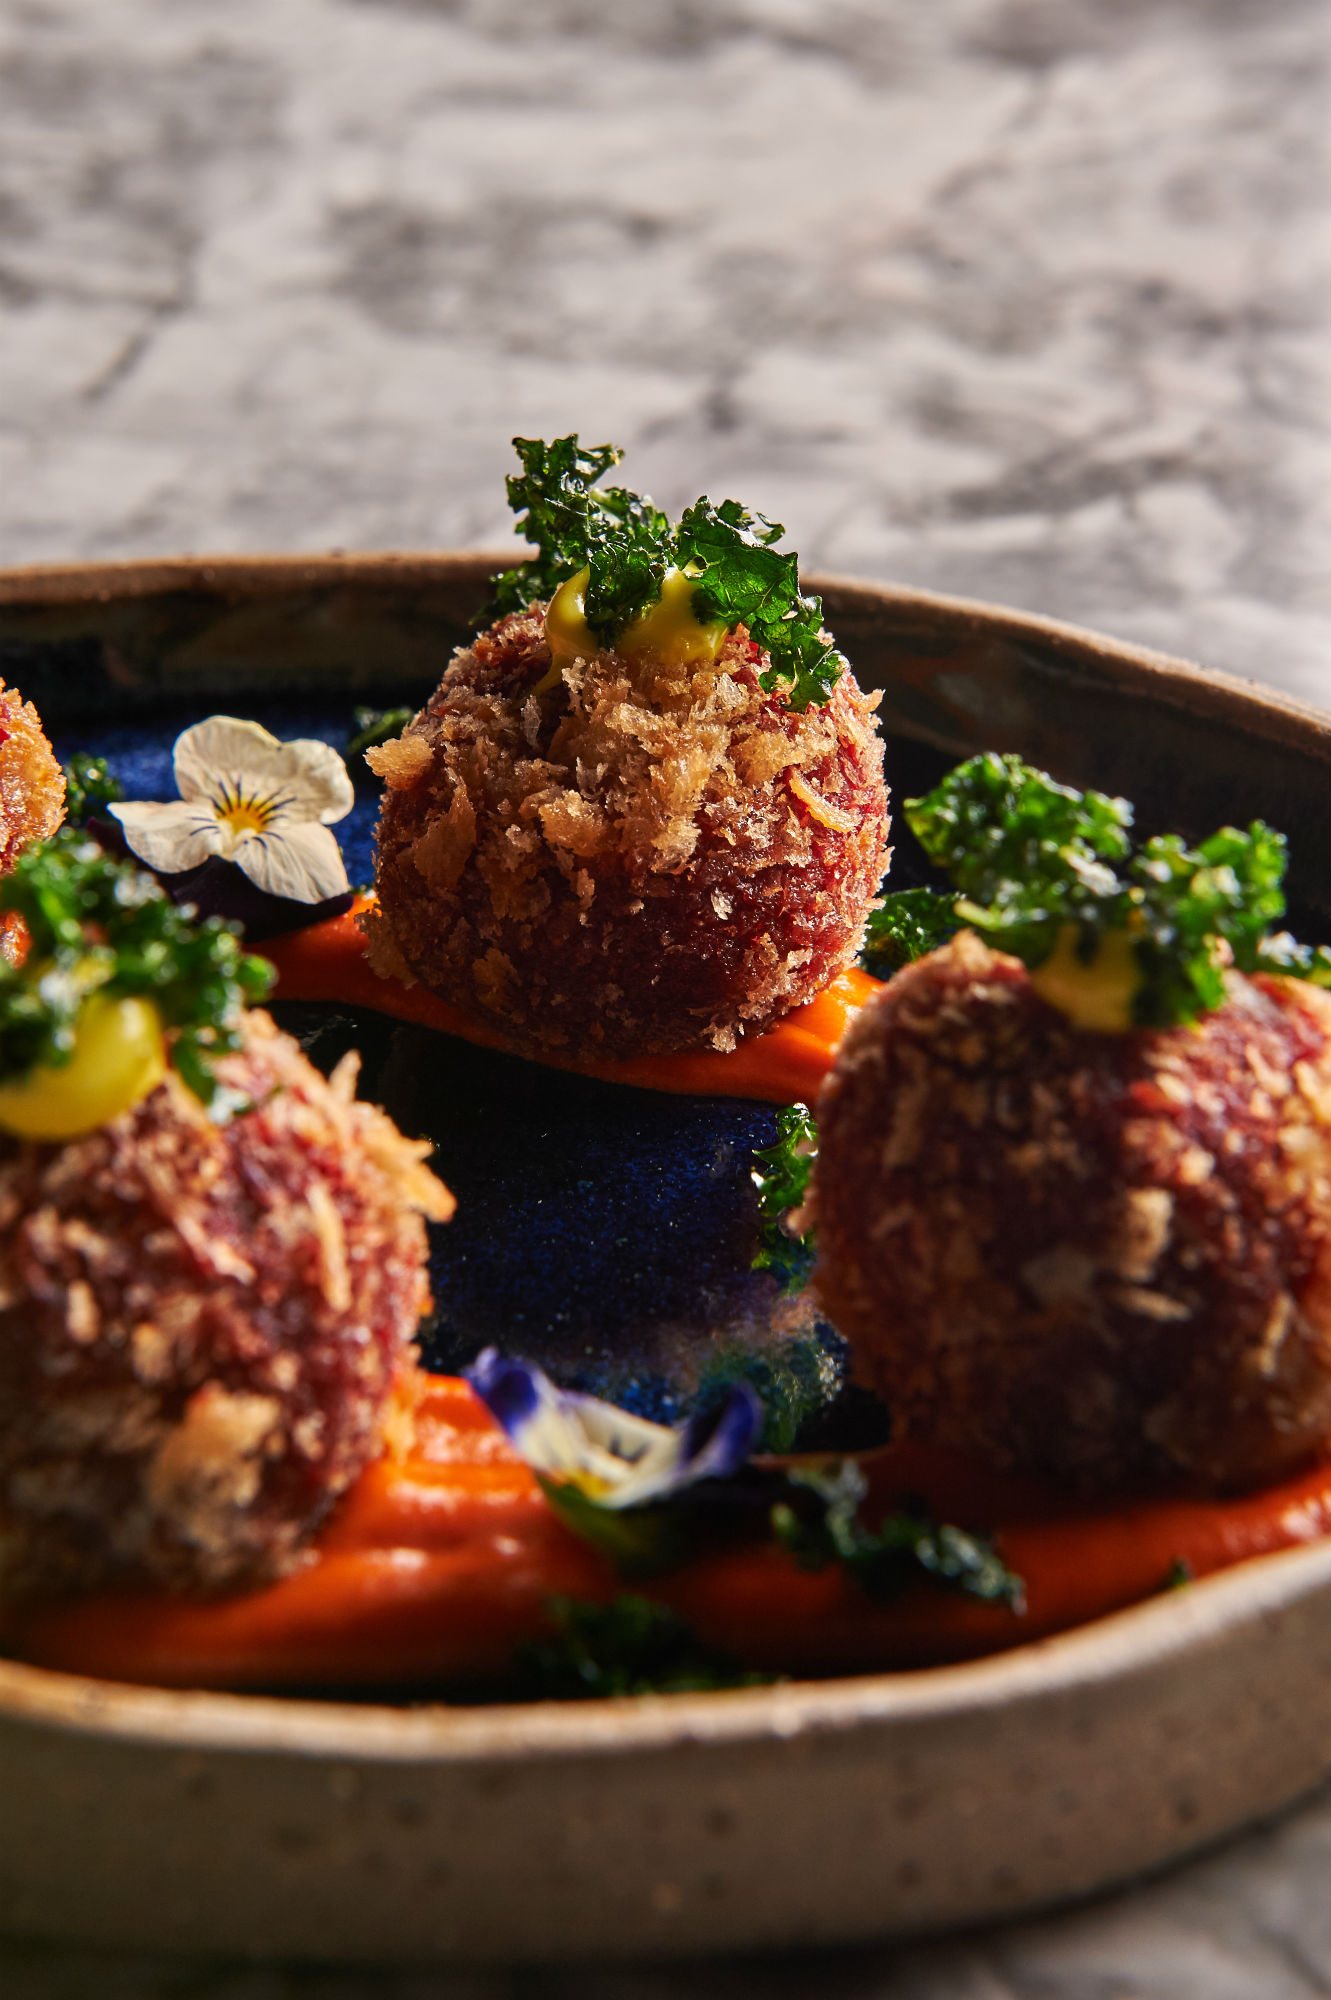 The spiced beetroot croquettes in a red pepper sauce with kale were some of our favourite bites at Masti